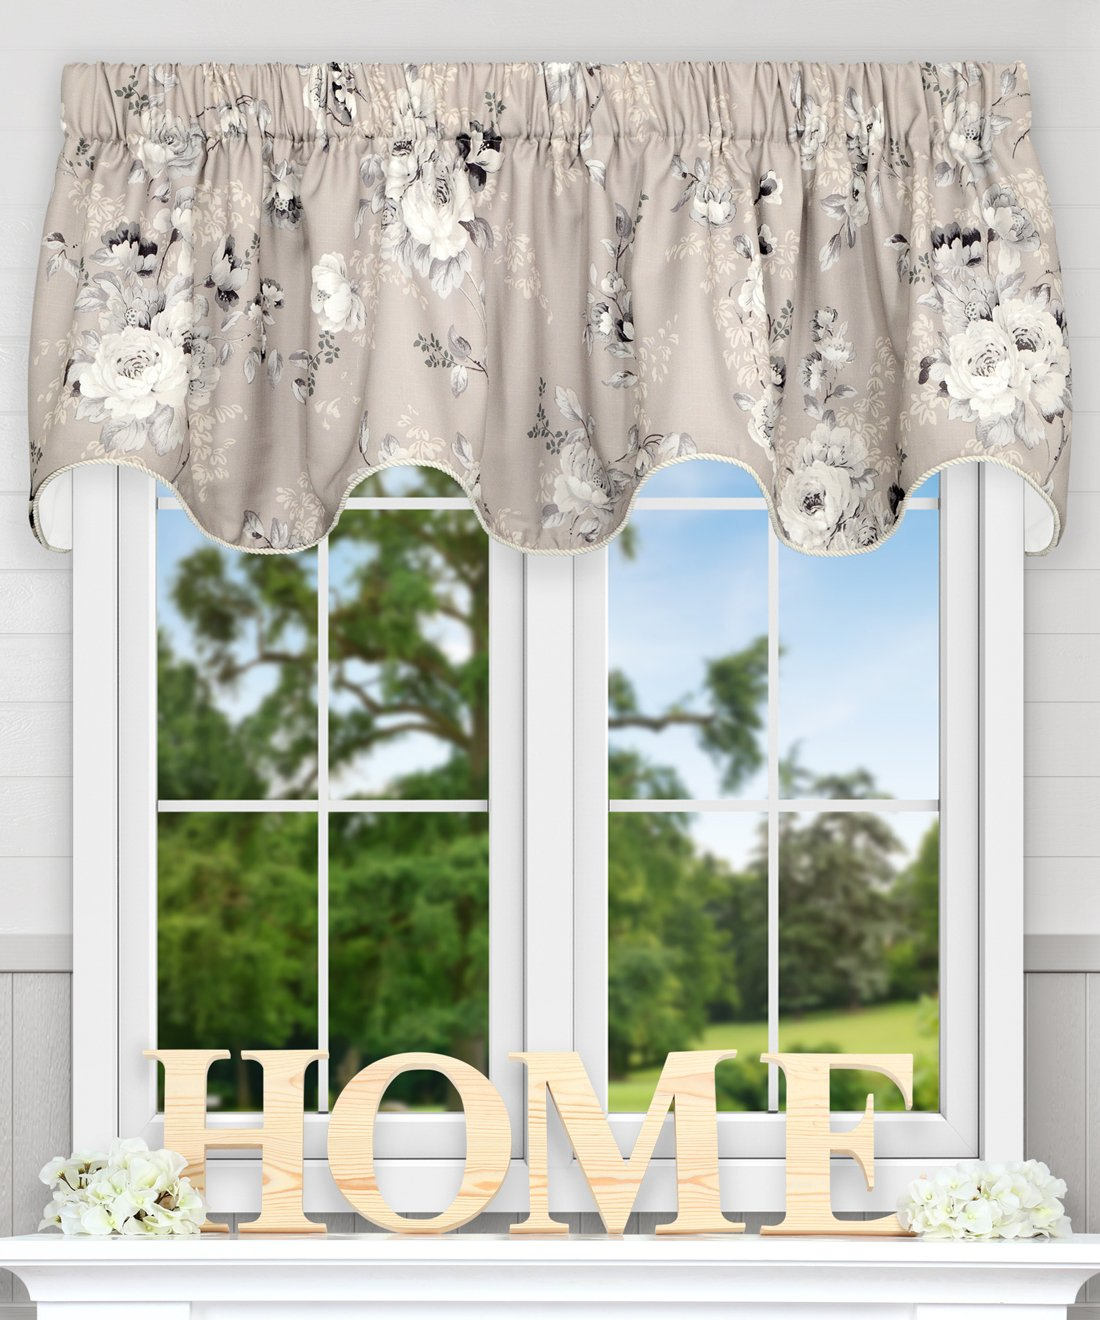 Ellis Curtain Chatsworth Traditional Floral Design (Lined Scallop Valance Grey